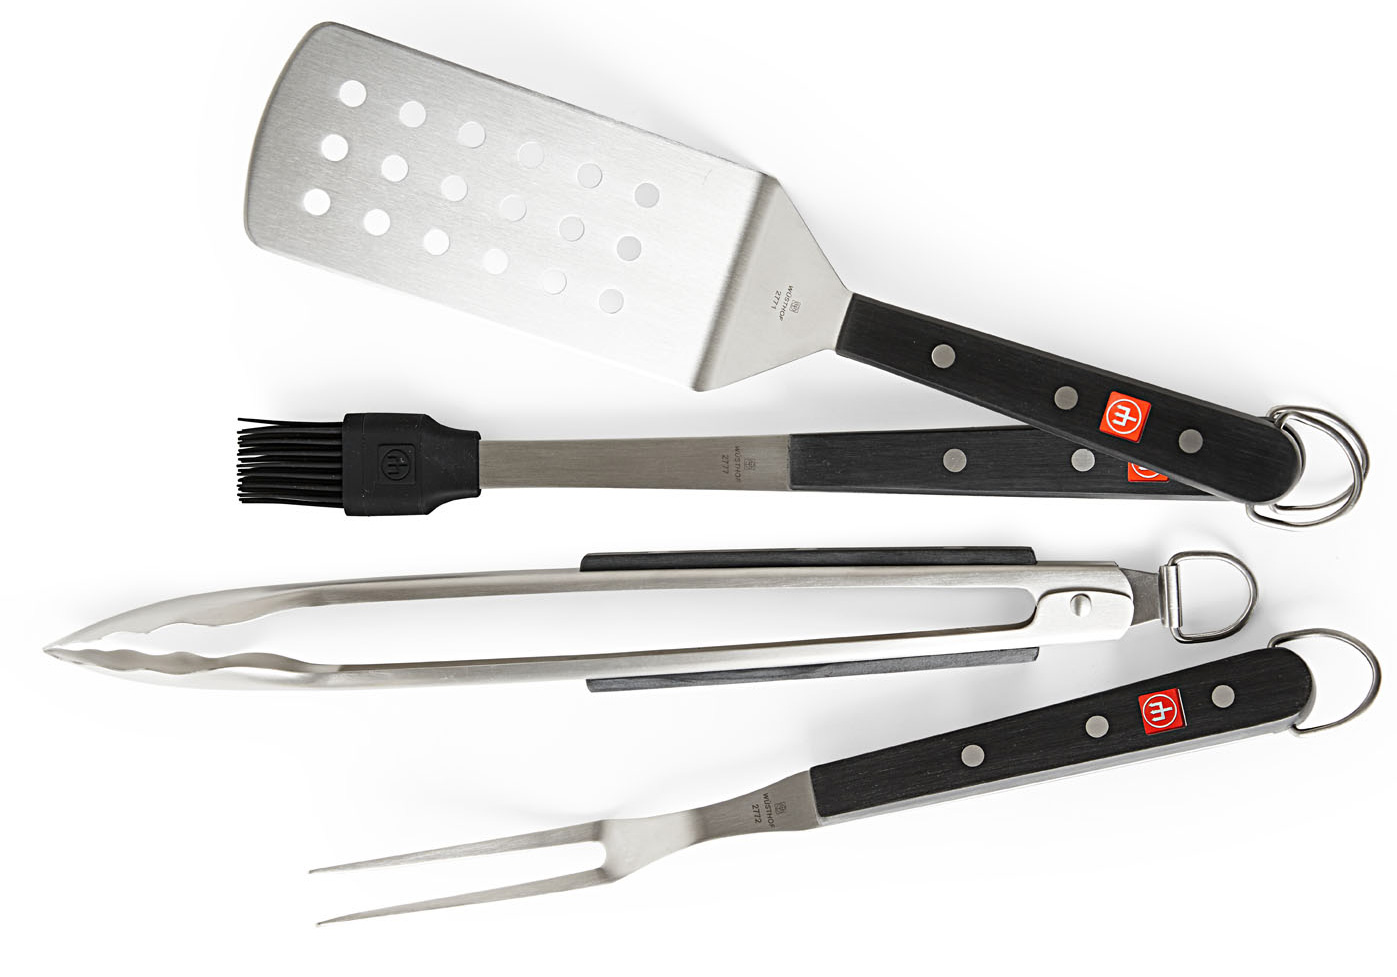 Grilling gear -- luxe tools